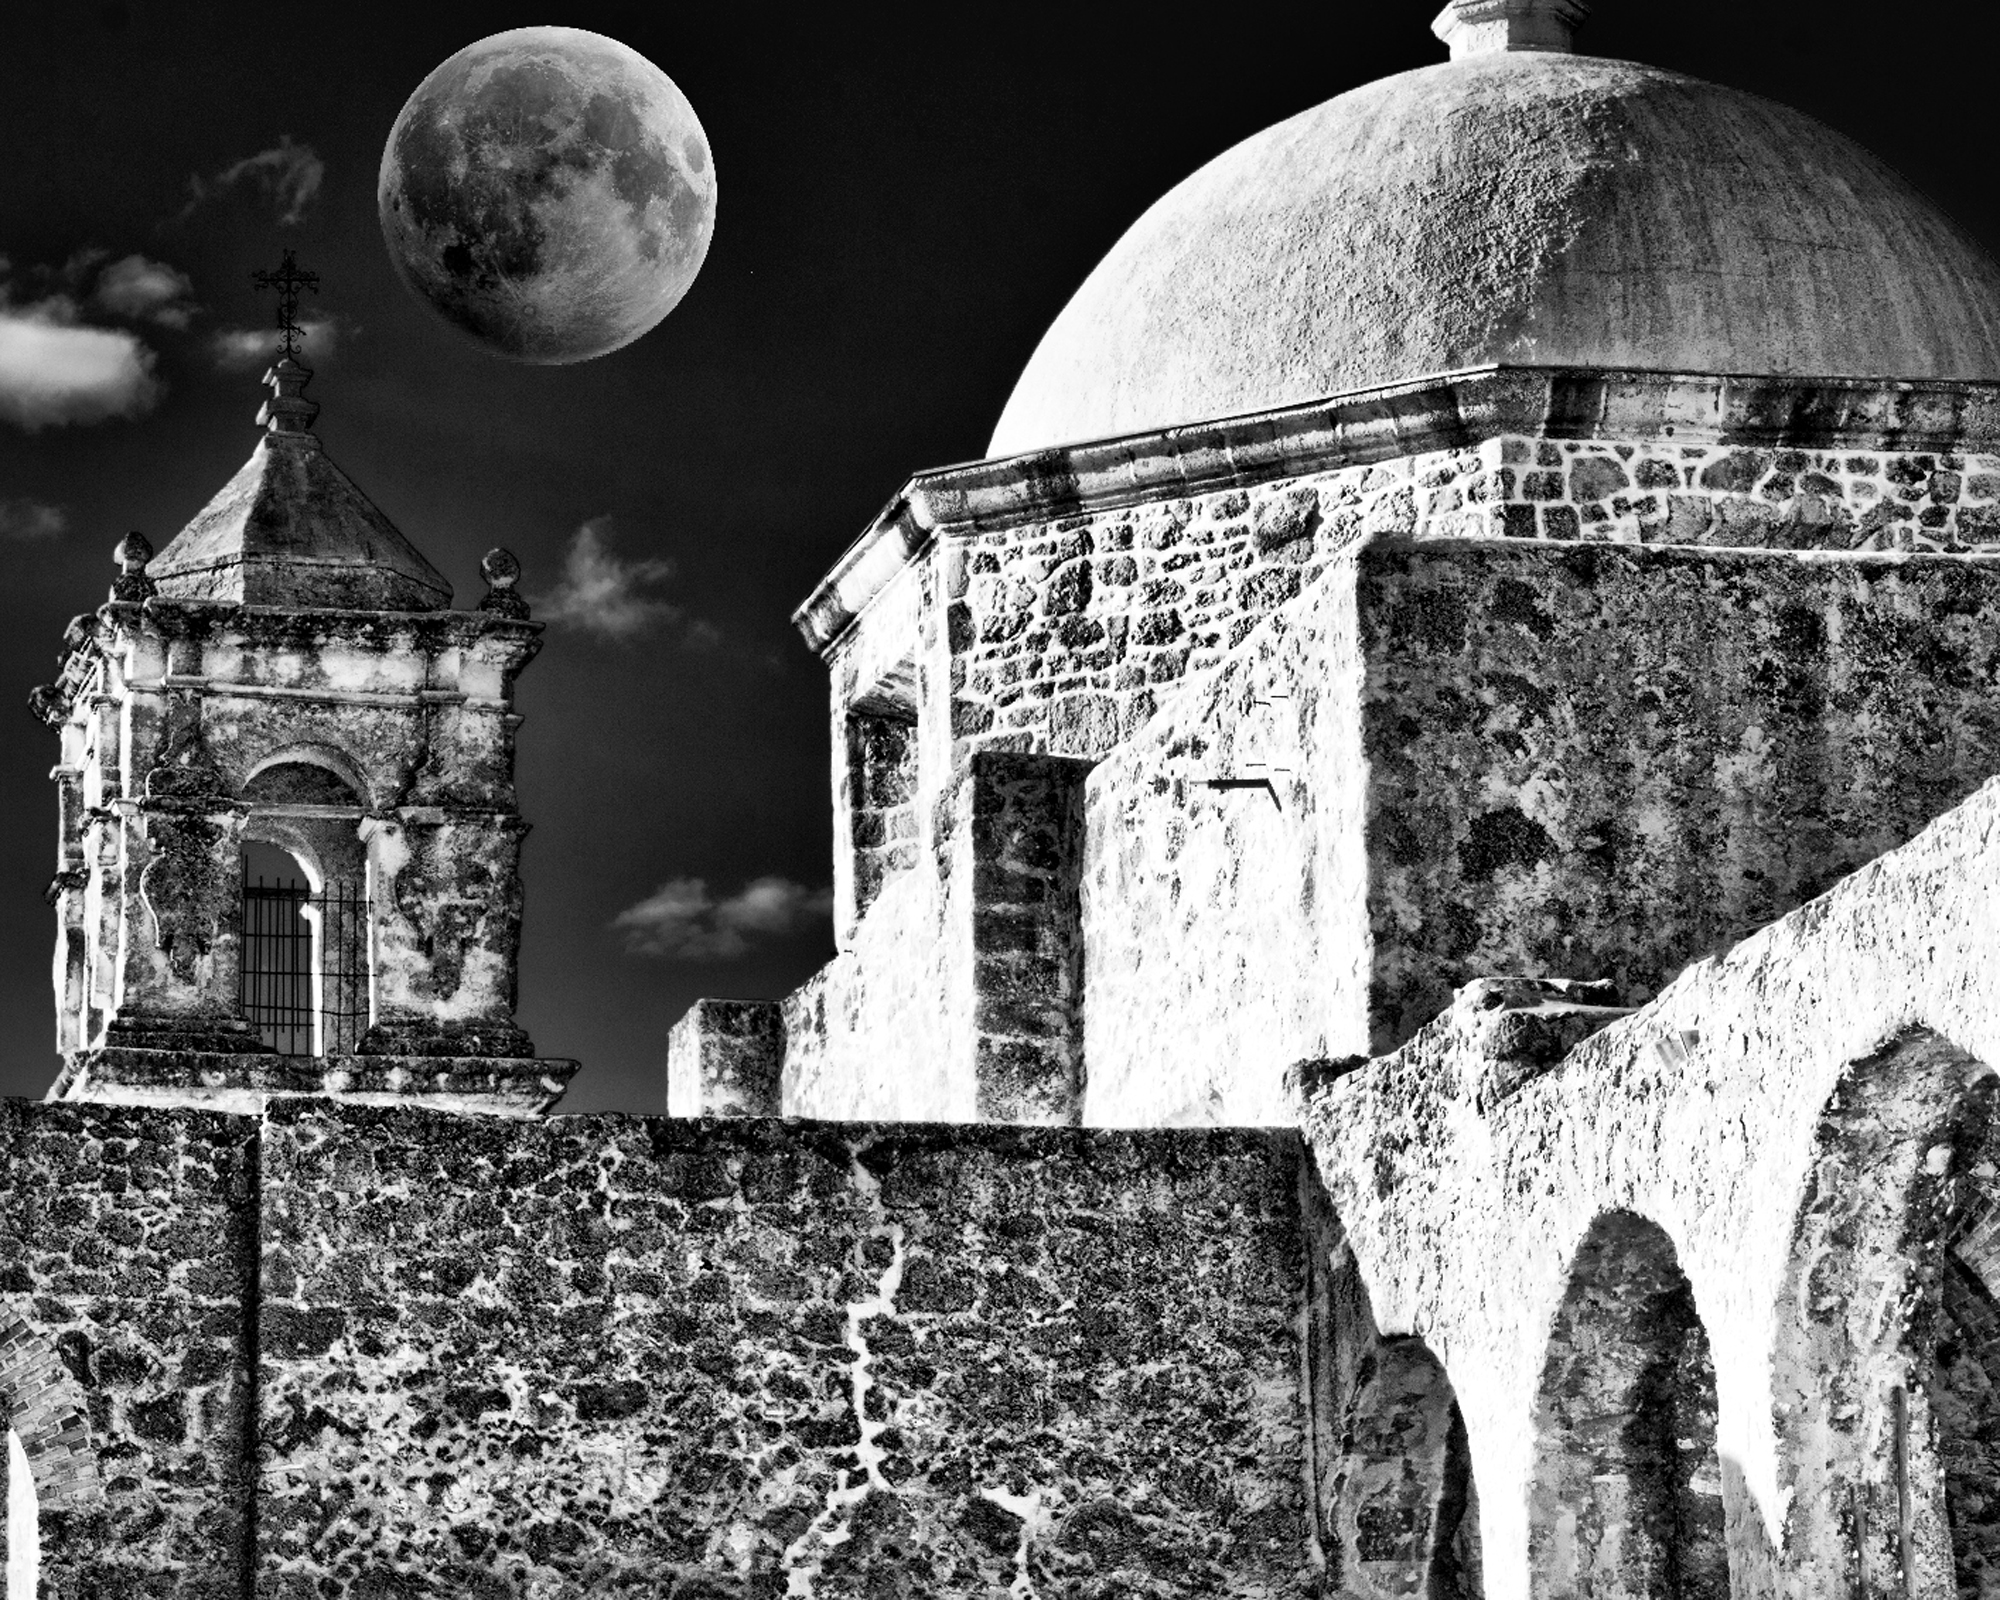 MOON over Mission_15_5